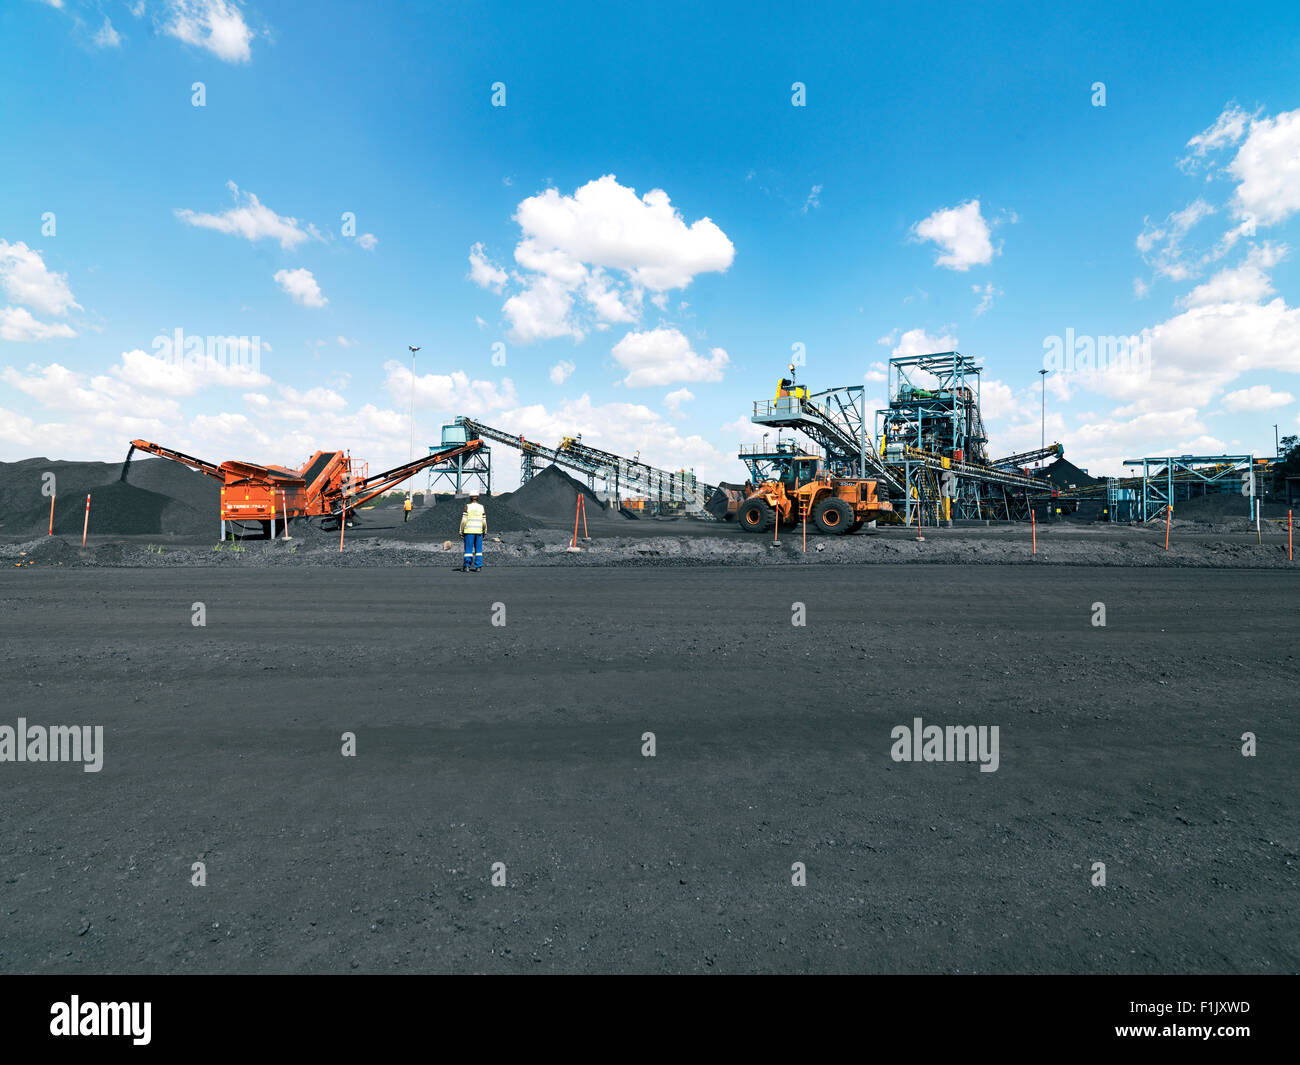 Sorting and grading the coal for collection, Palesa Coal Mine - Stock Image